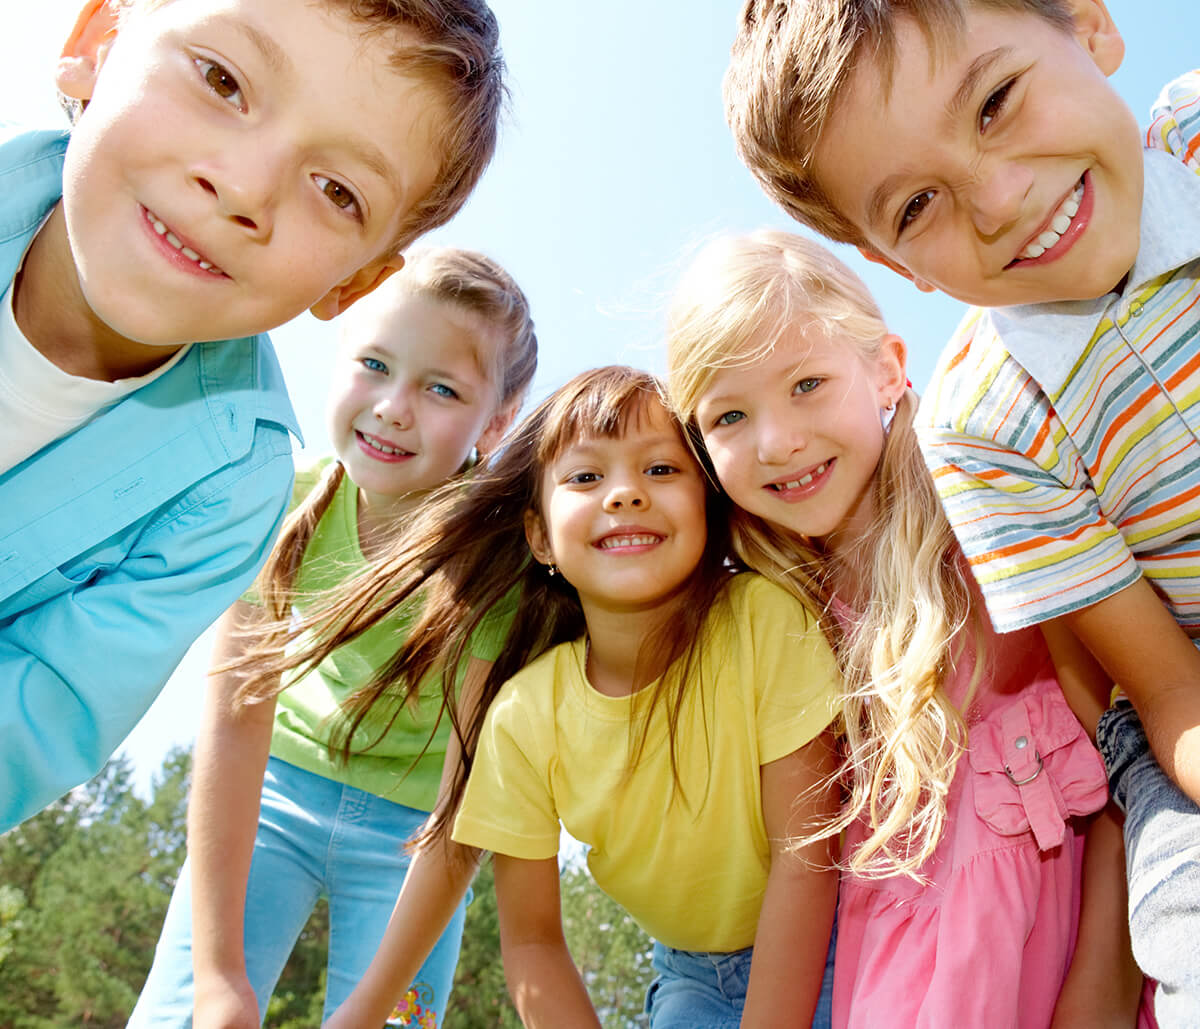 Healthy Smiles Dental Clinic in Mississauga, on Area Explains Importance of Dental Care for Children